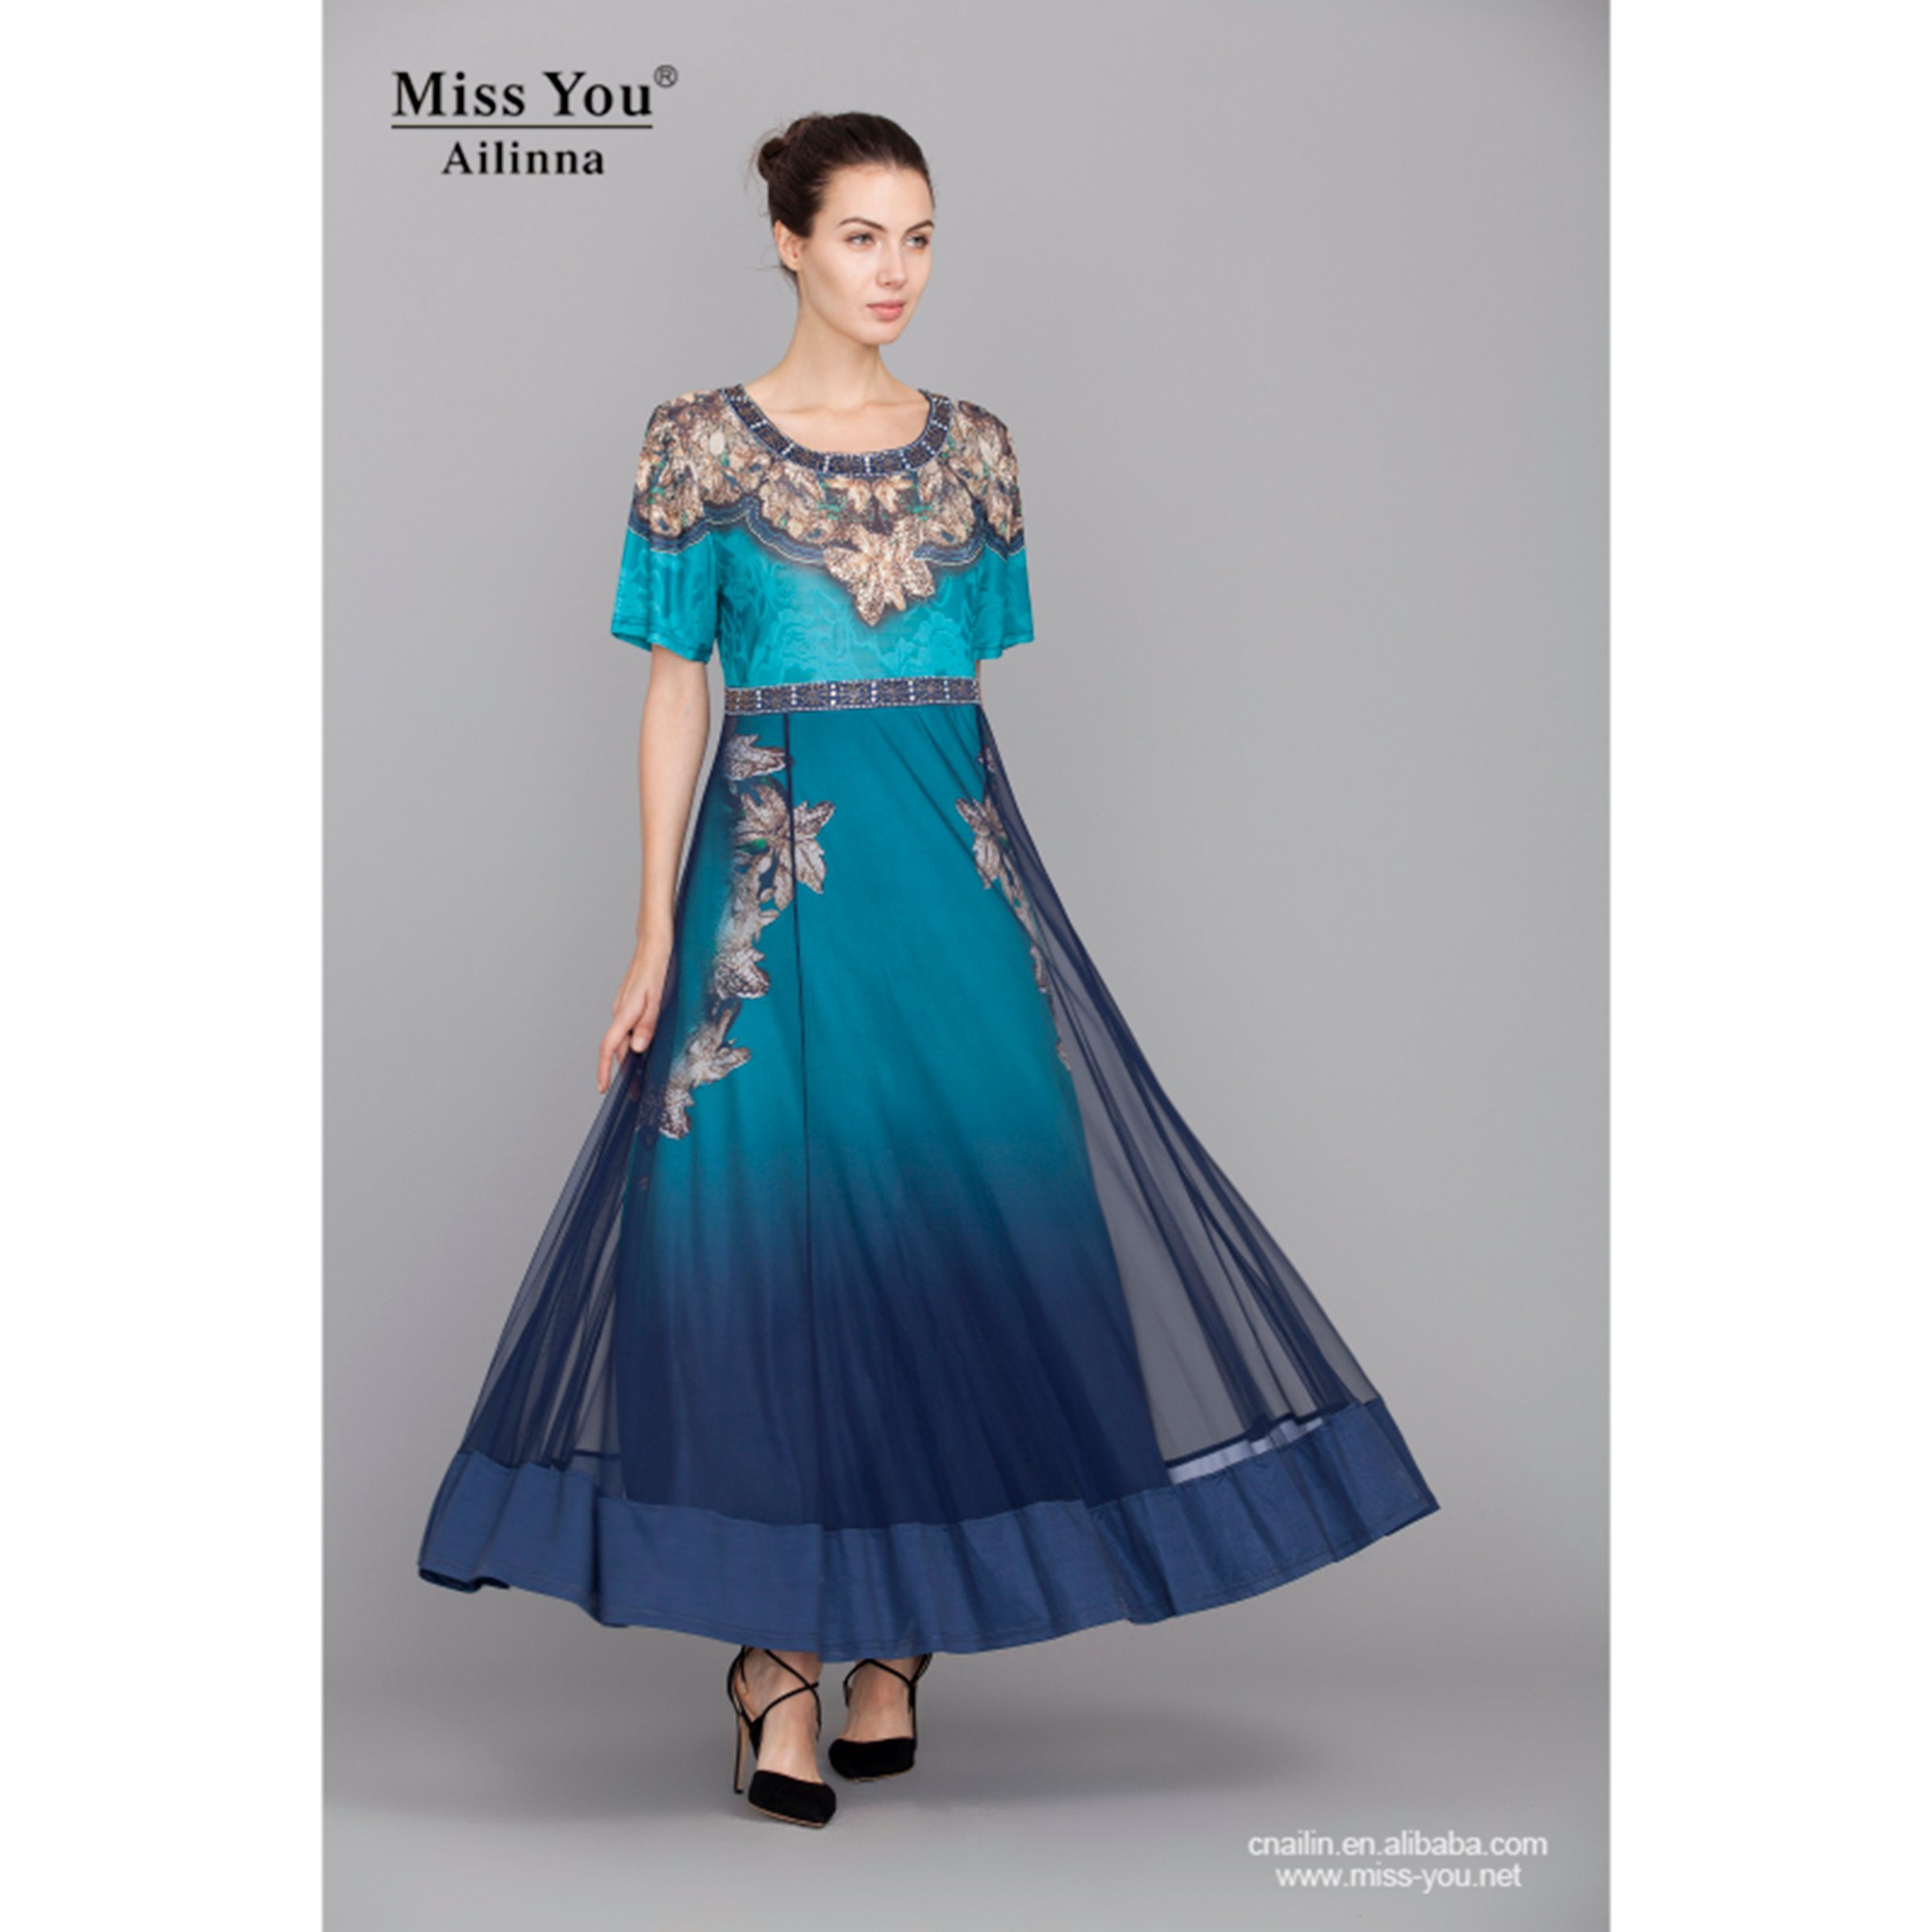 Miss You Ailinna 801412 Long Crystal Cotton Dress Distributor Printed Blue Beautiful Dress